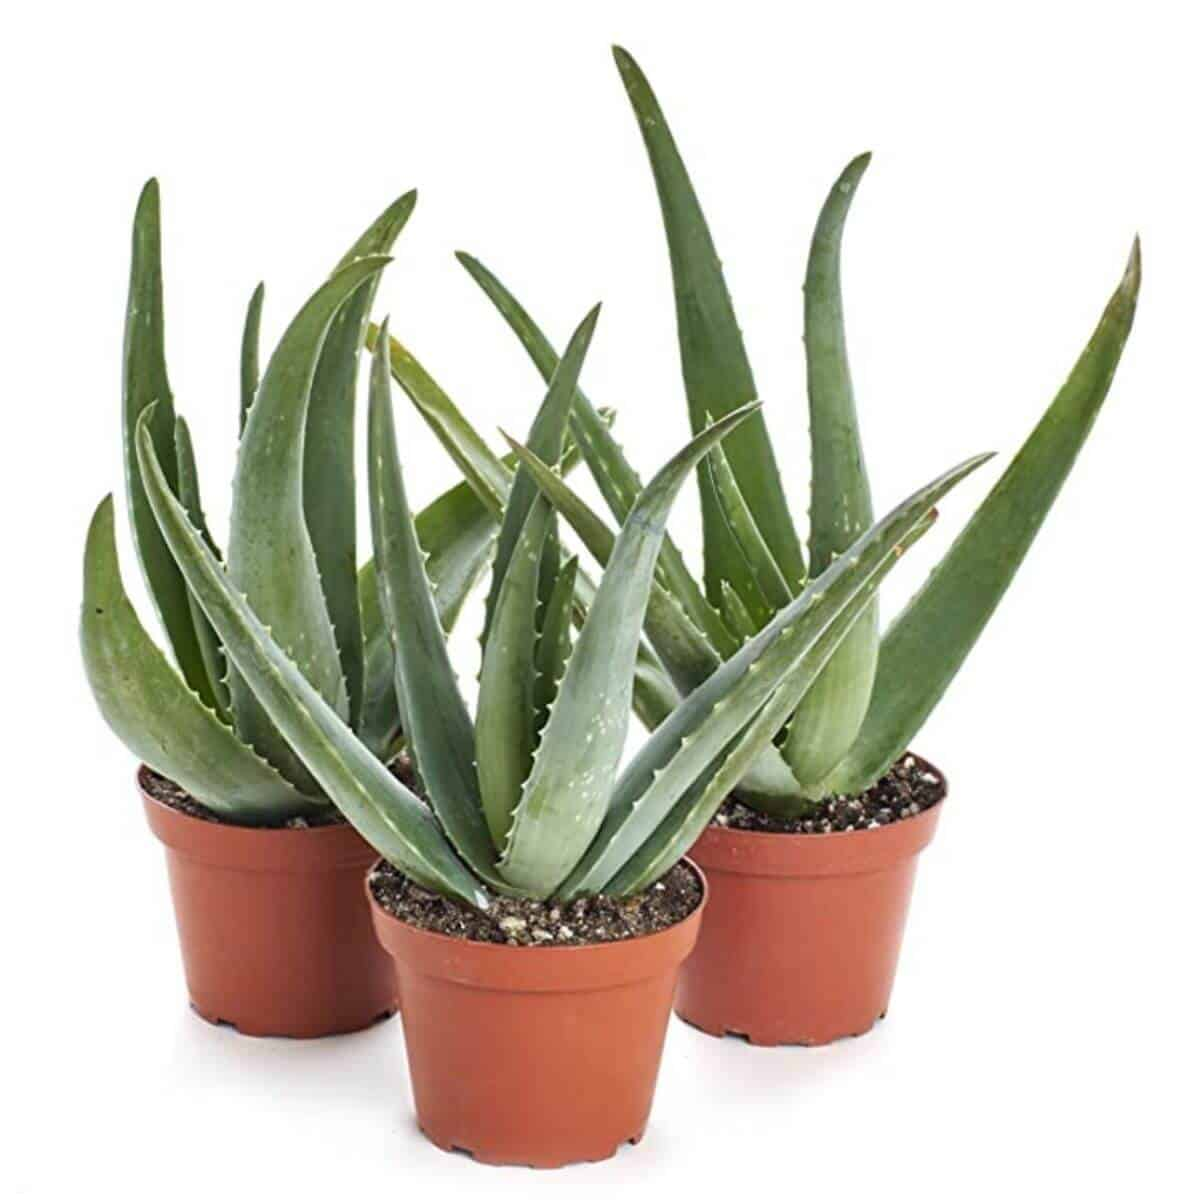 Three aloe vera plants in a pot.